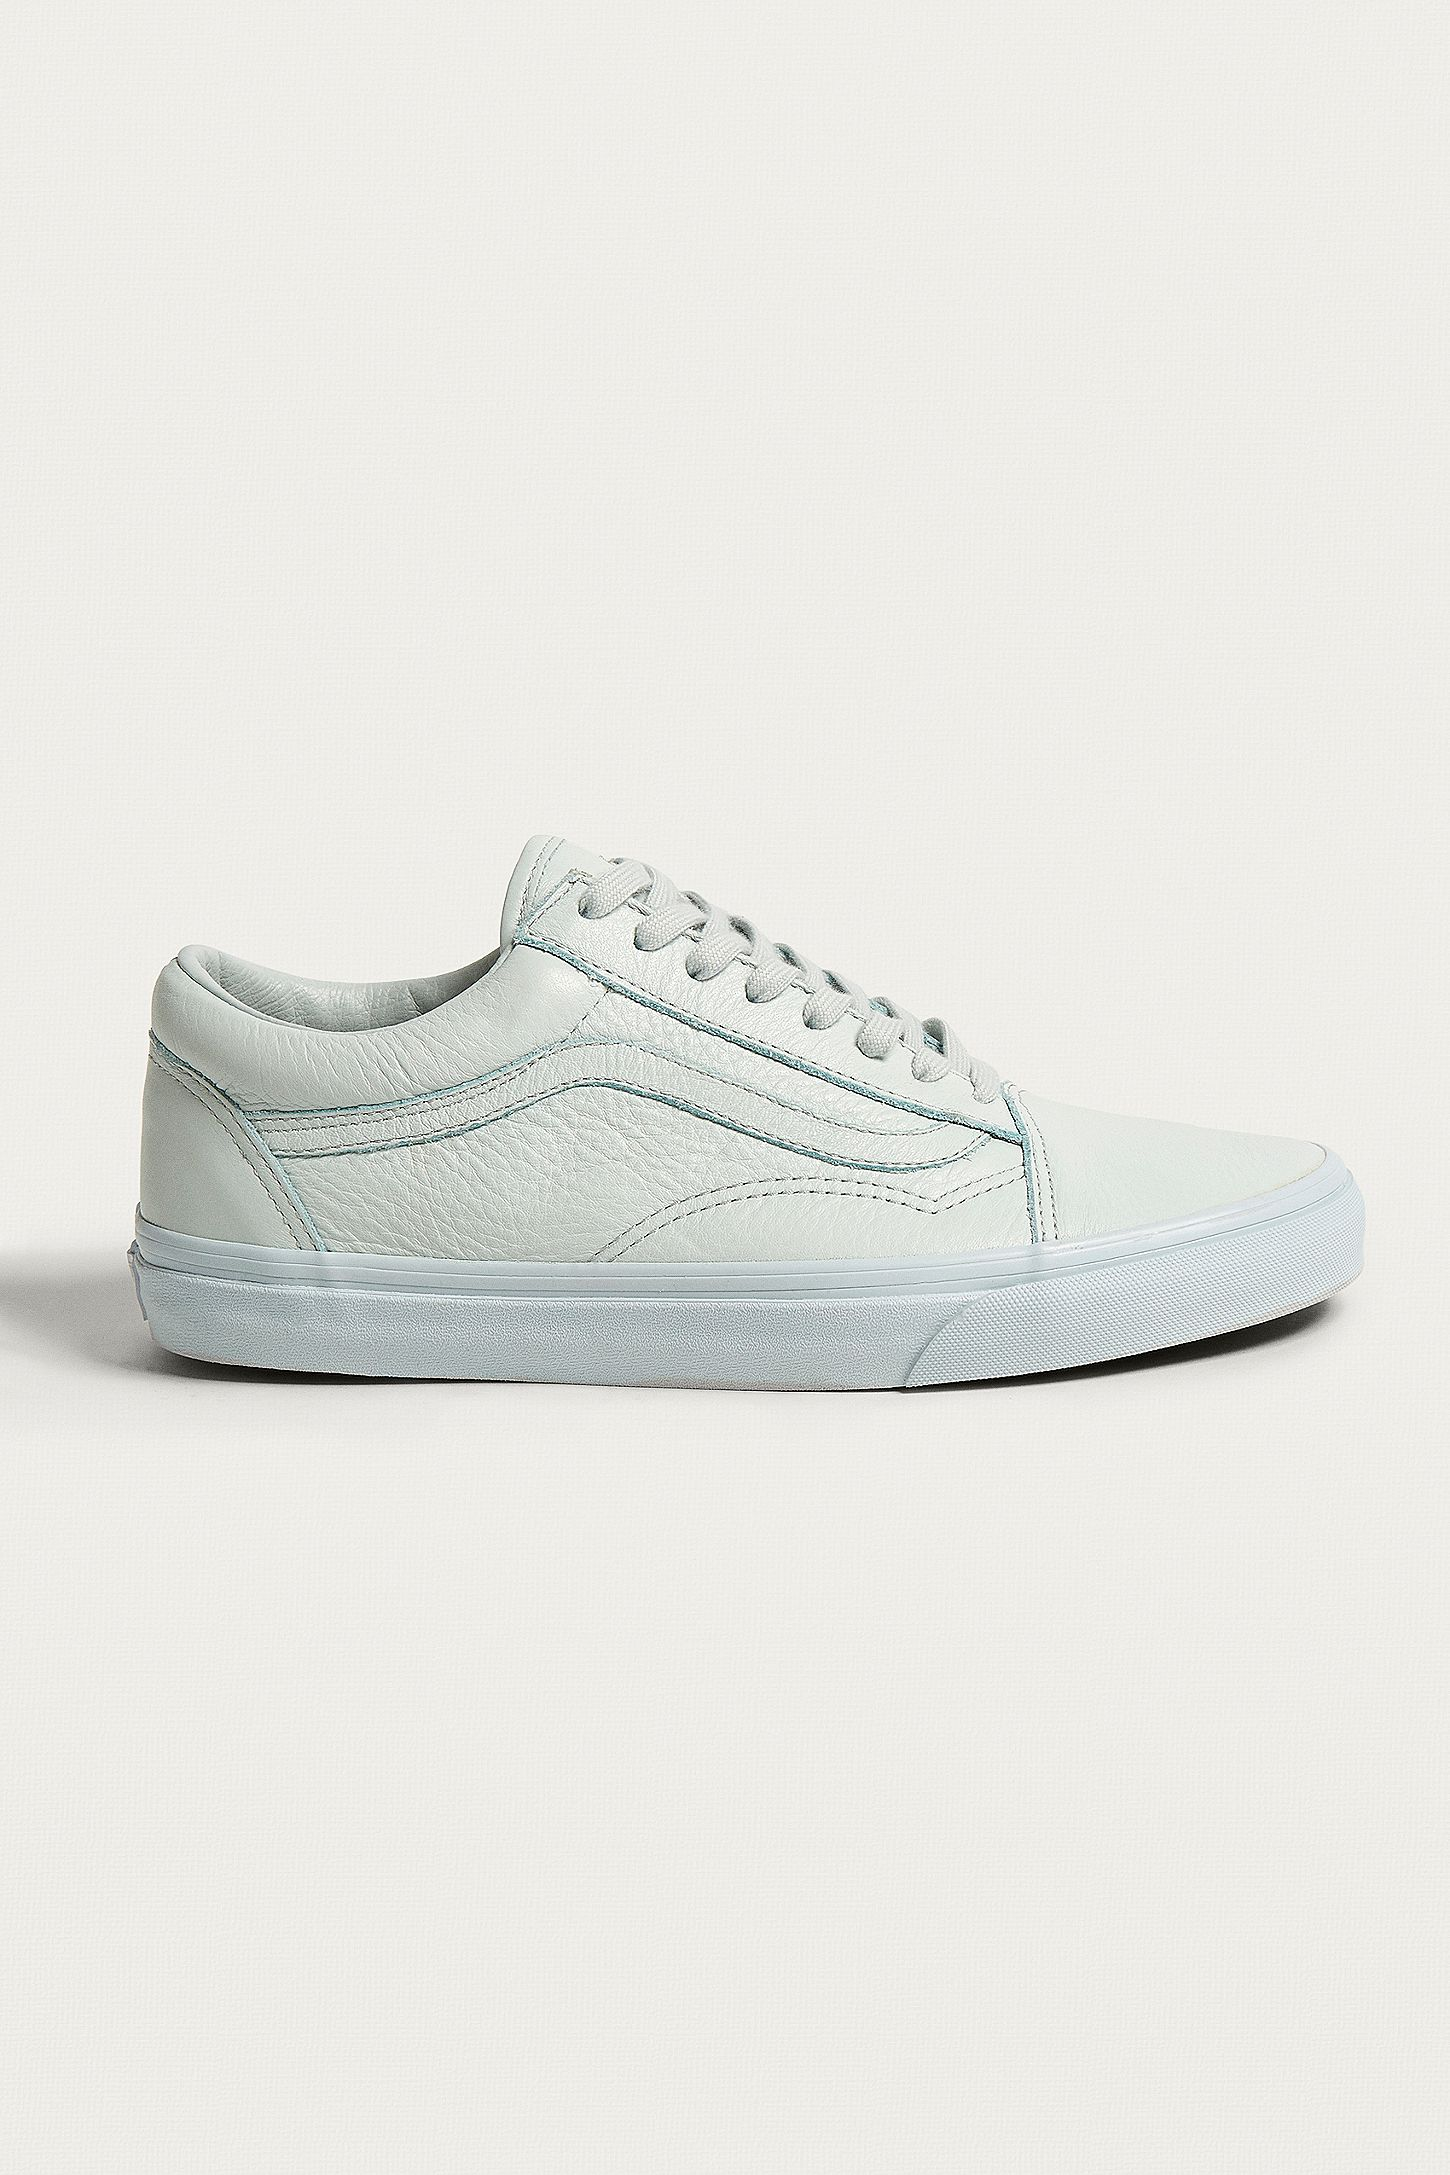 05ae08b5047d Vans Old Skool White Leather Trainers. Click on image to zoom. Hover to  zoom. Double Tap to Zoom